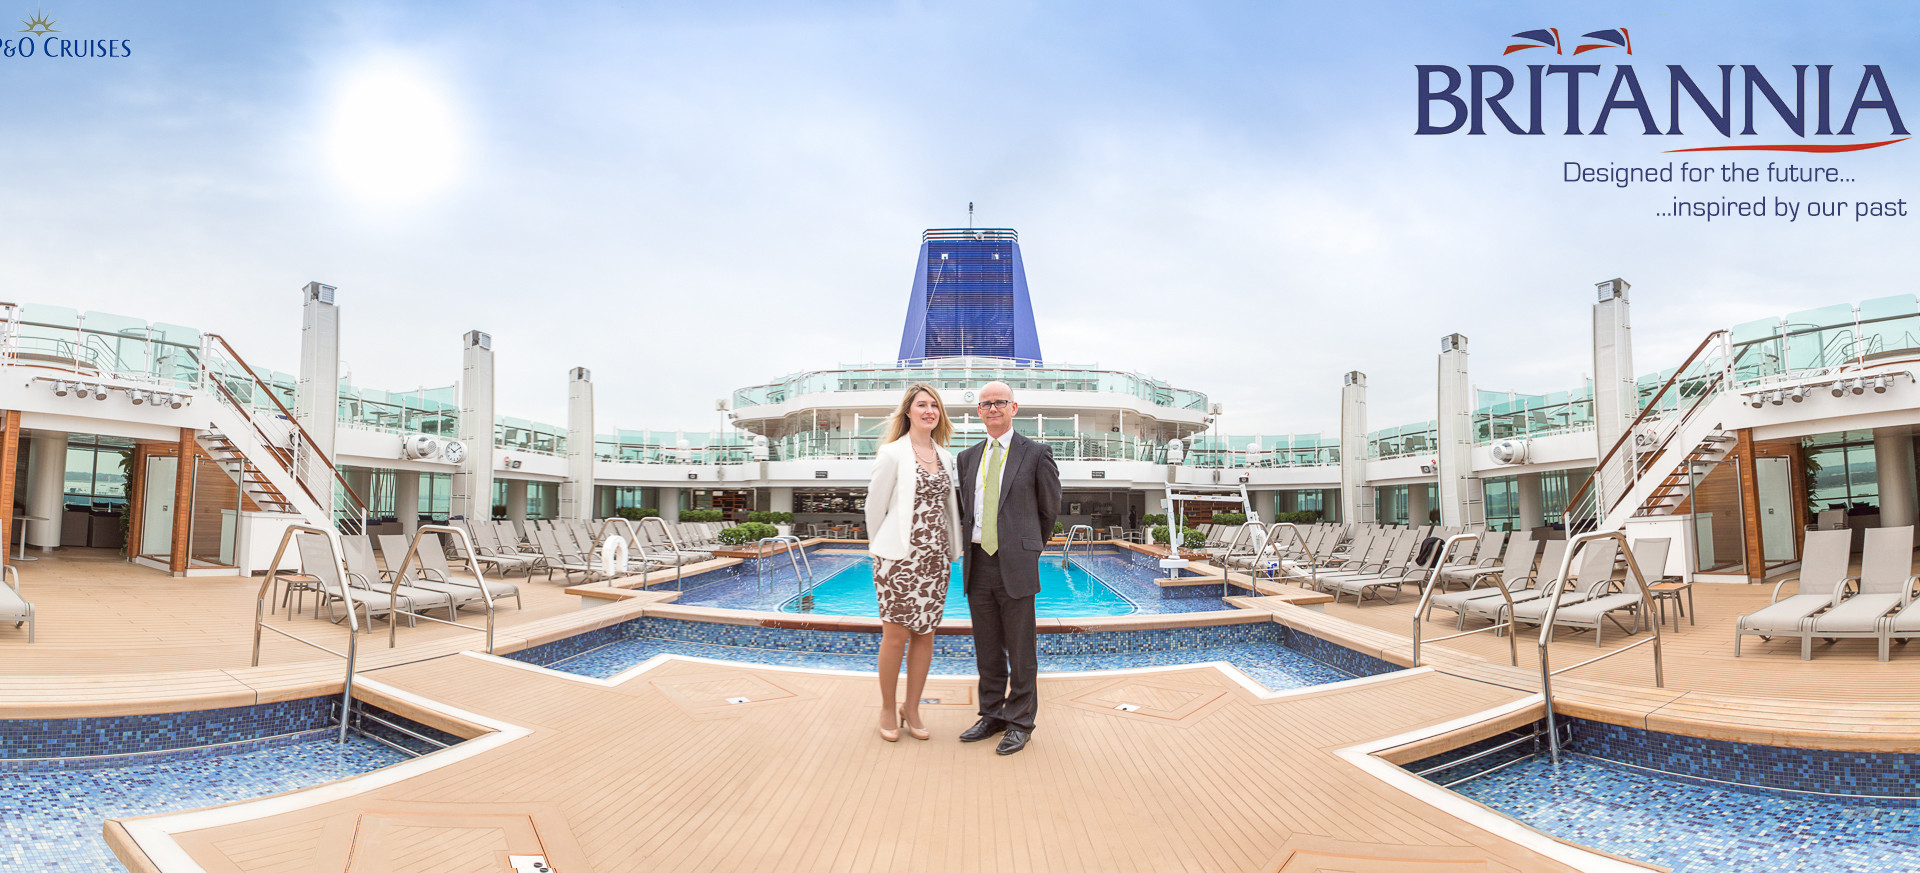 Commercial Photography for P&O Cruises